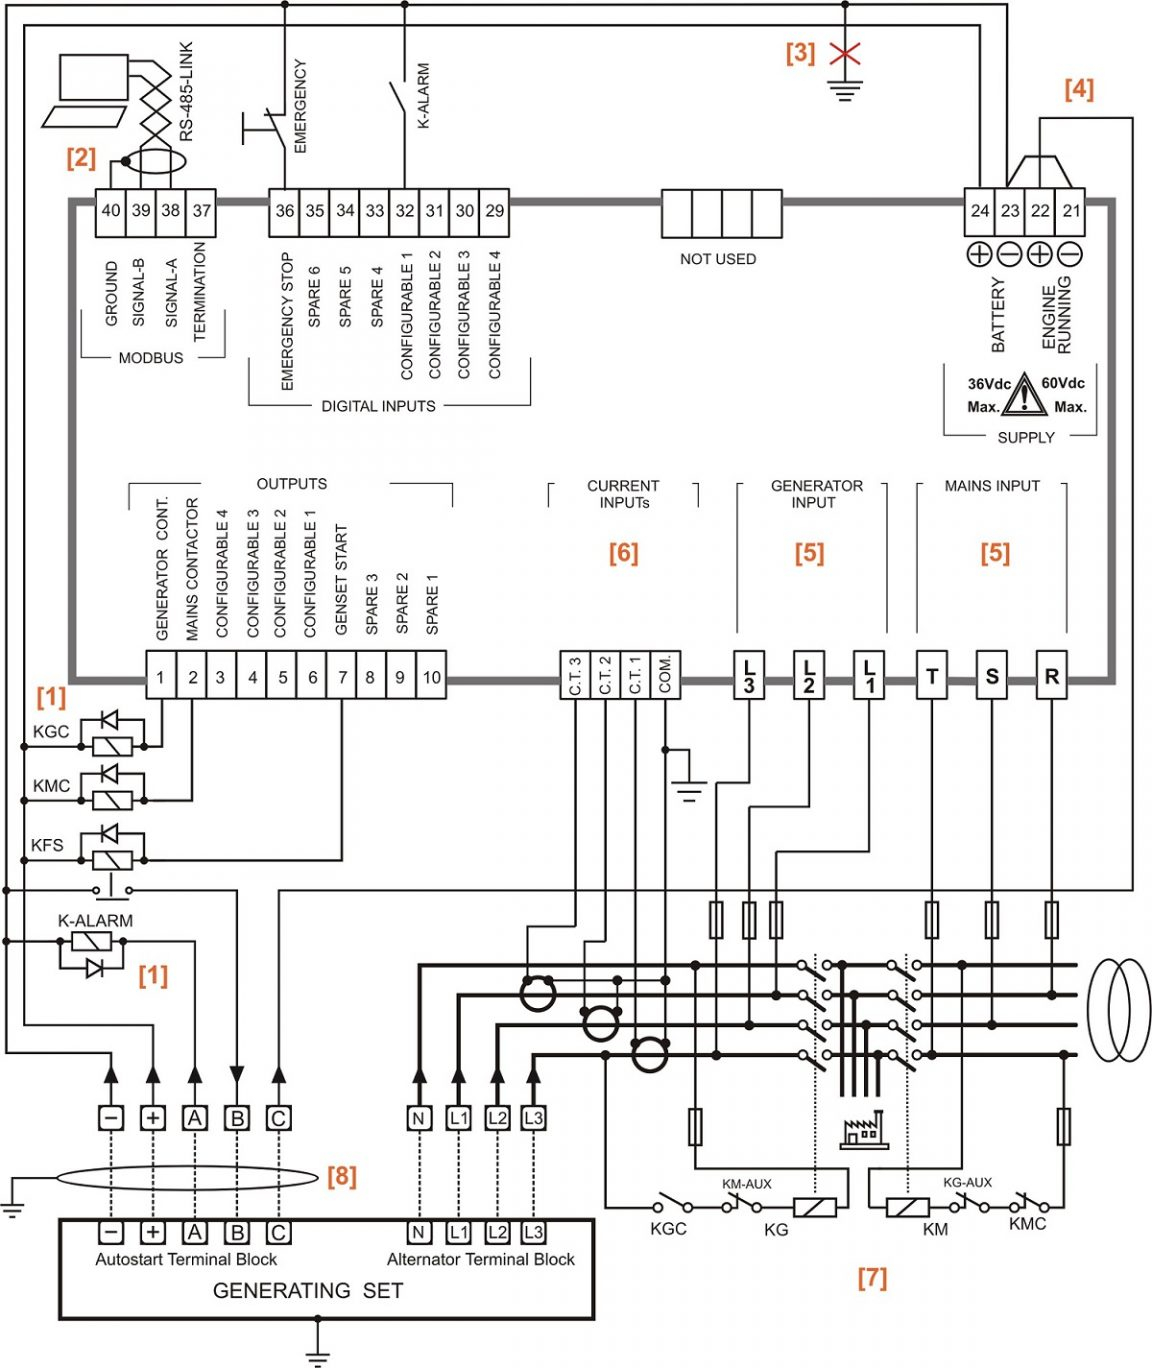 asco 7000 series automatic transfer switch wiring diagram Collection-Asco 7000 Series Automatic Transfer Switch Wiring Diagram Fresh Diagramuto Transfer Switchts Workingnd Control Panel Wiring 8-h